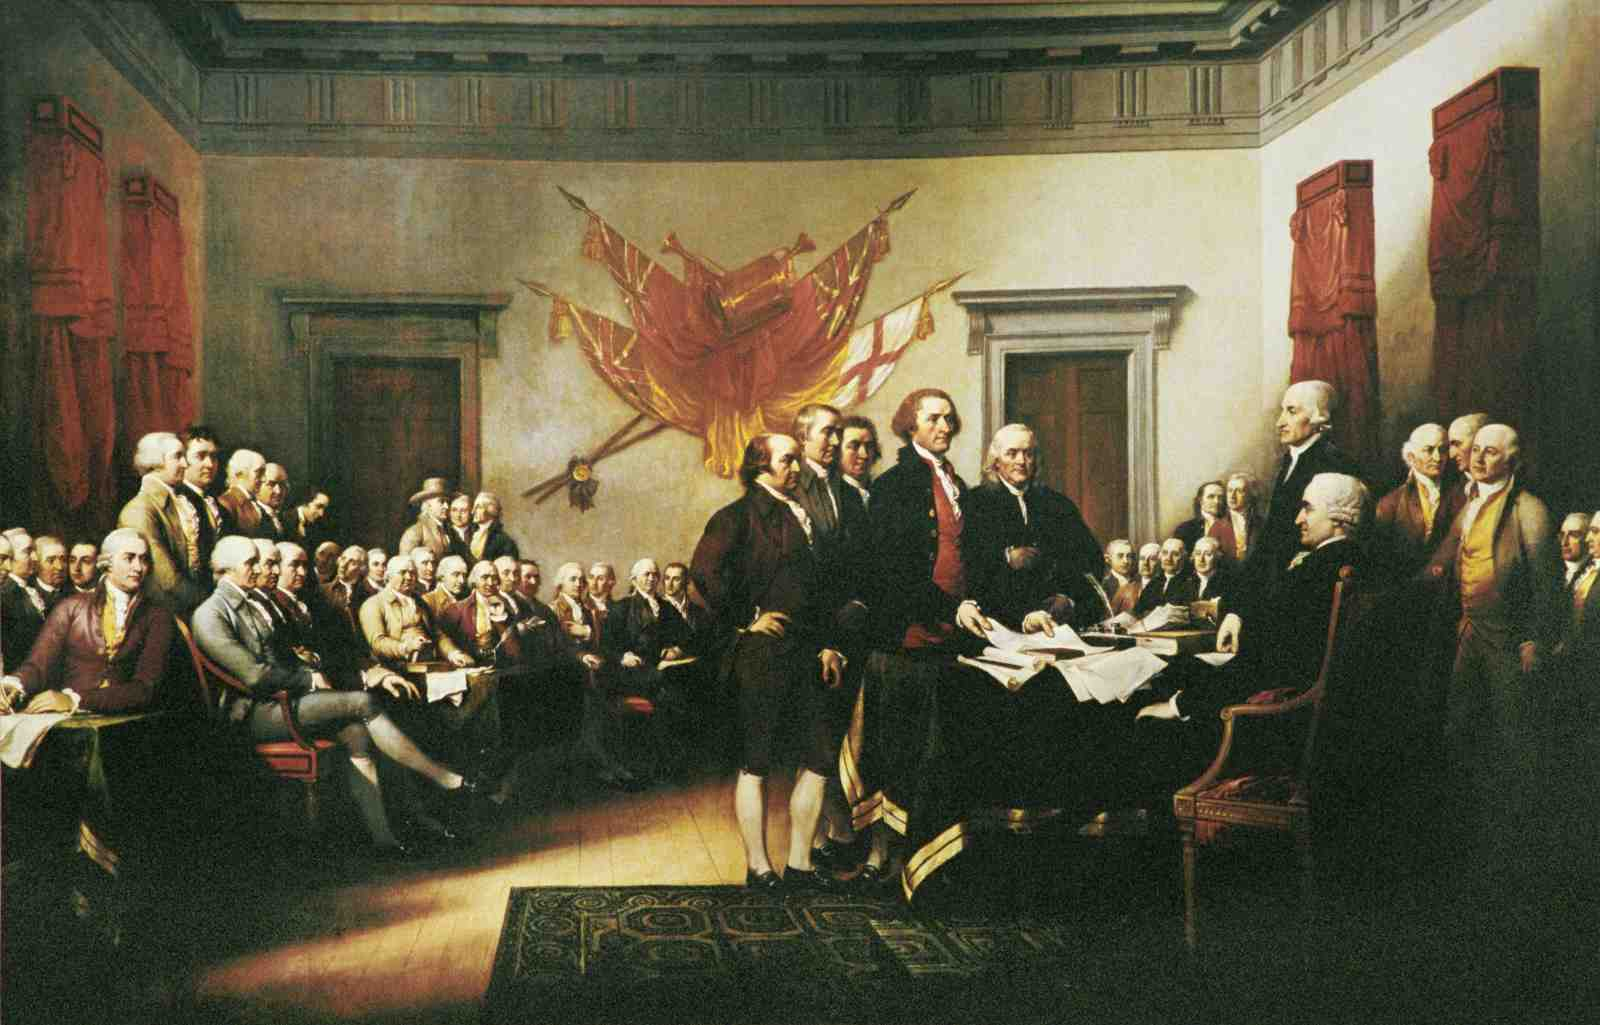 The Declaration of Independence, John Trumbull's most famous work